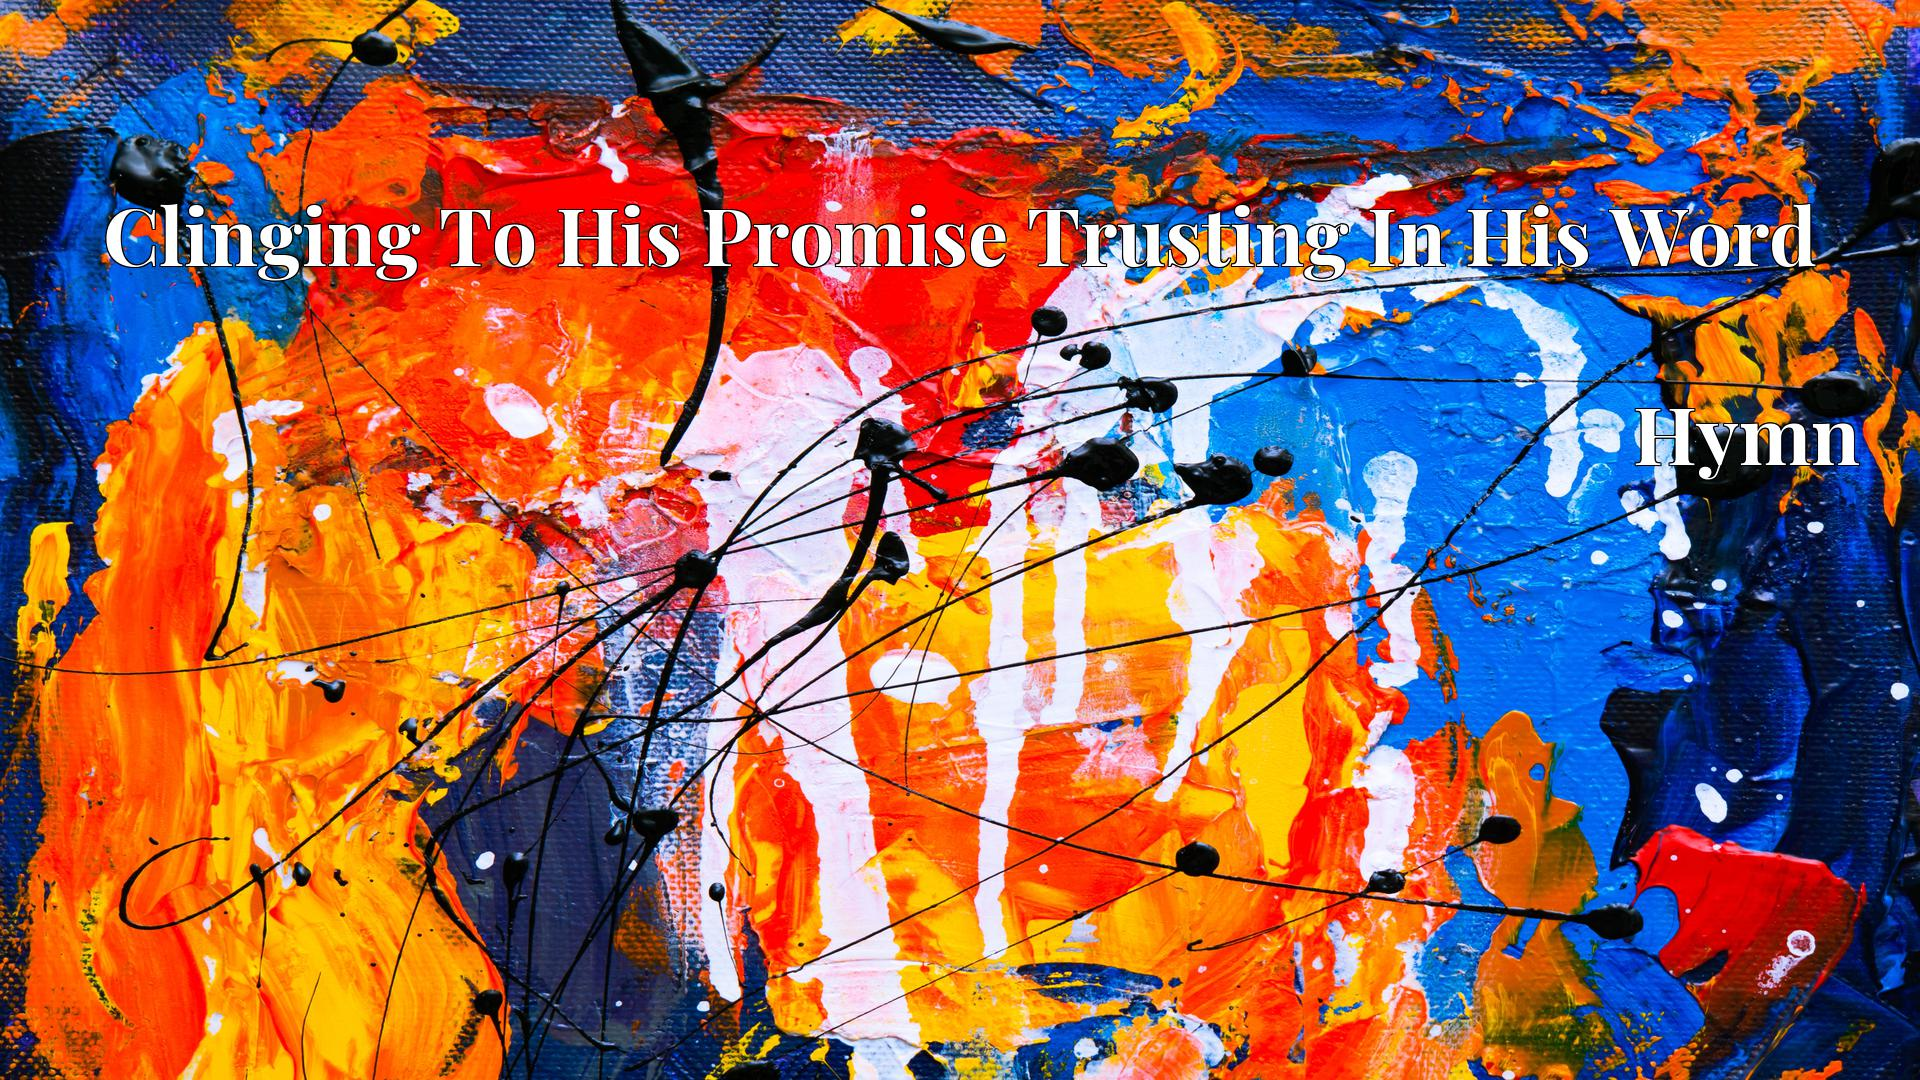 Clinging To His Promise Trusting In His Word - Hymn